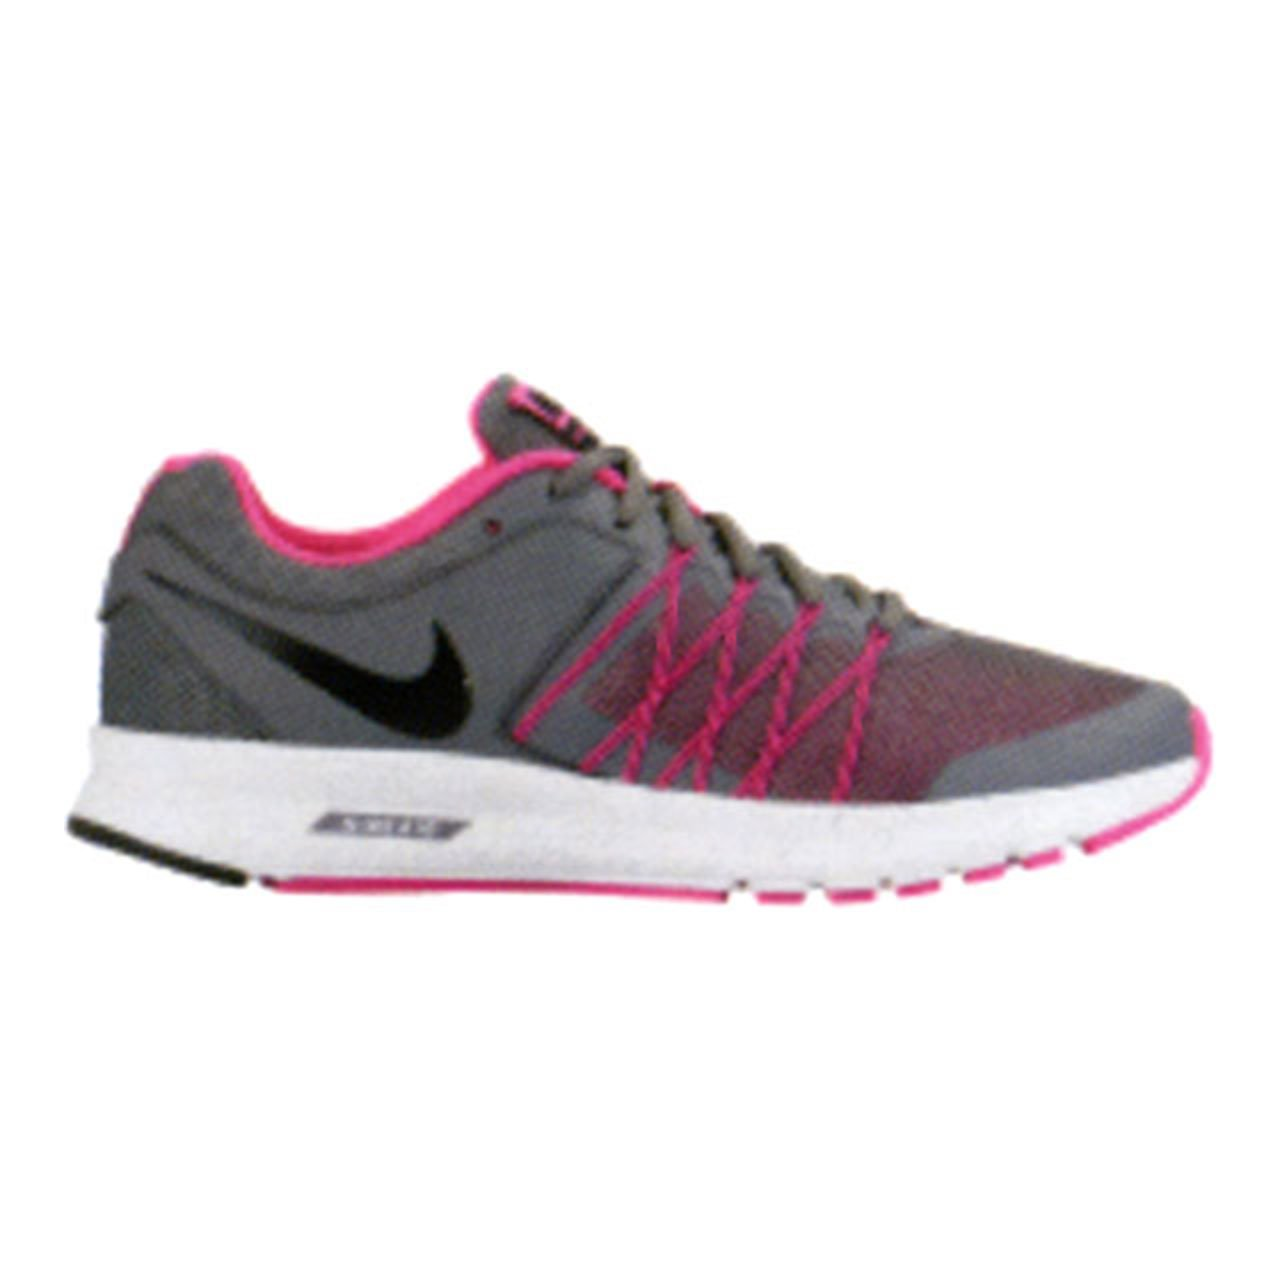 hot sale online fb7e6 eb622 Amazon.com   Nike WMNS AIR Relentless 6 MSL Womens Road Running Shoes  843883-002 Size 5.5 B(M) US   Road Running